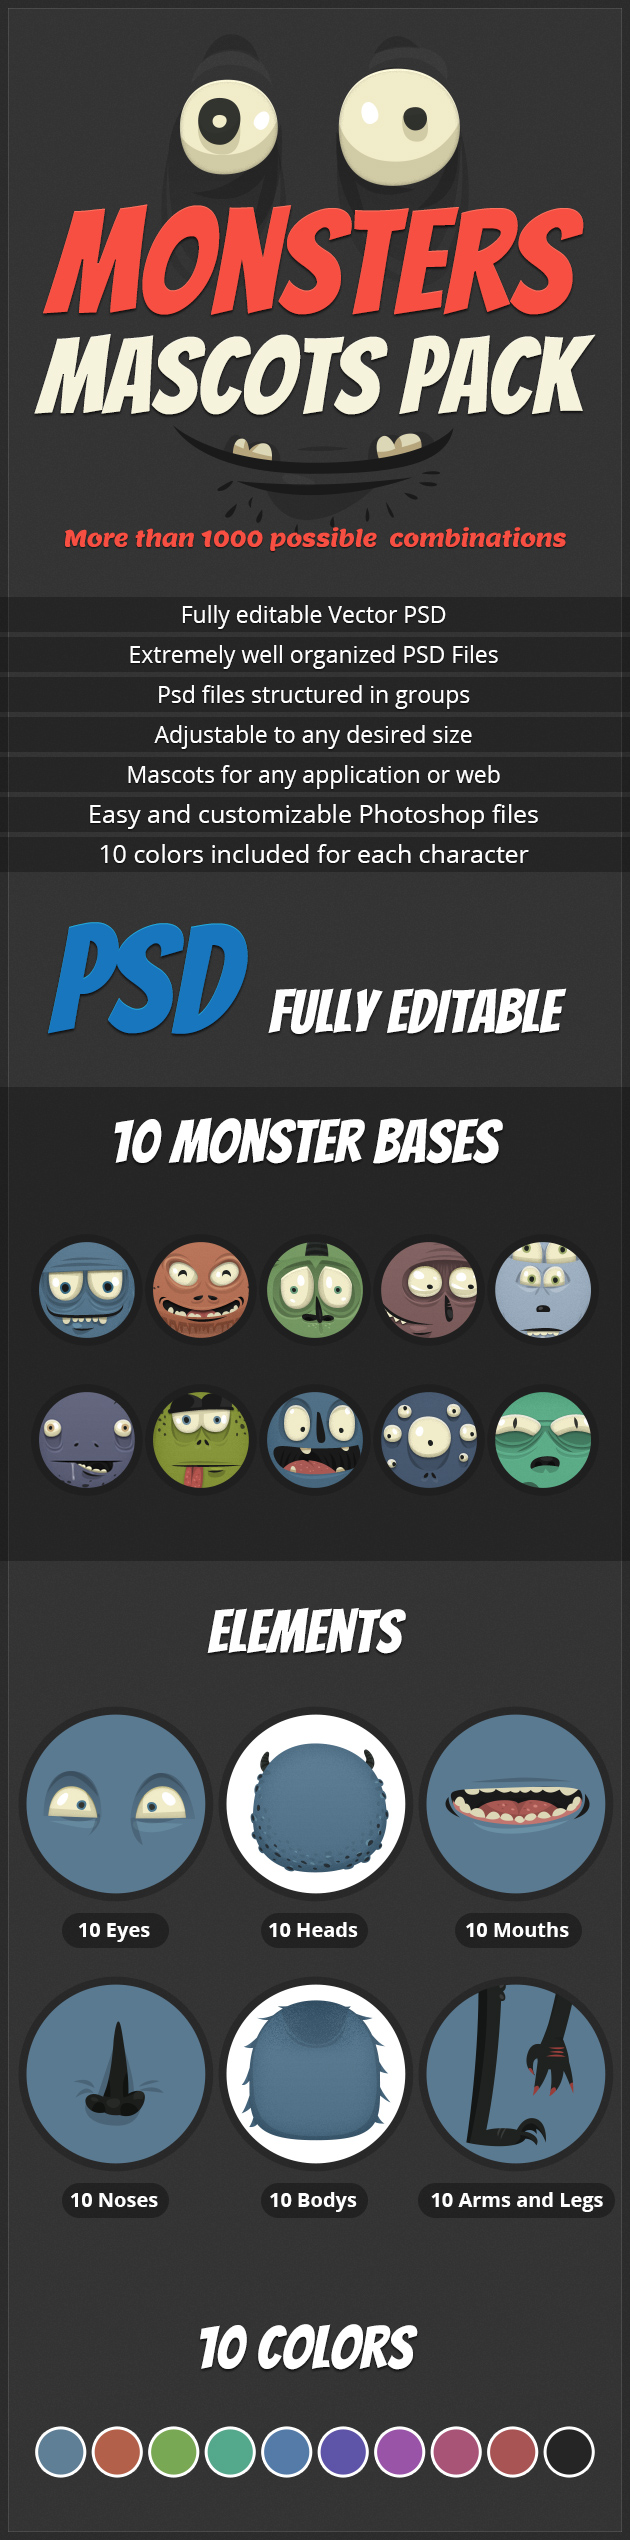 INTRO_Monster_Mascots_Pack